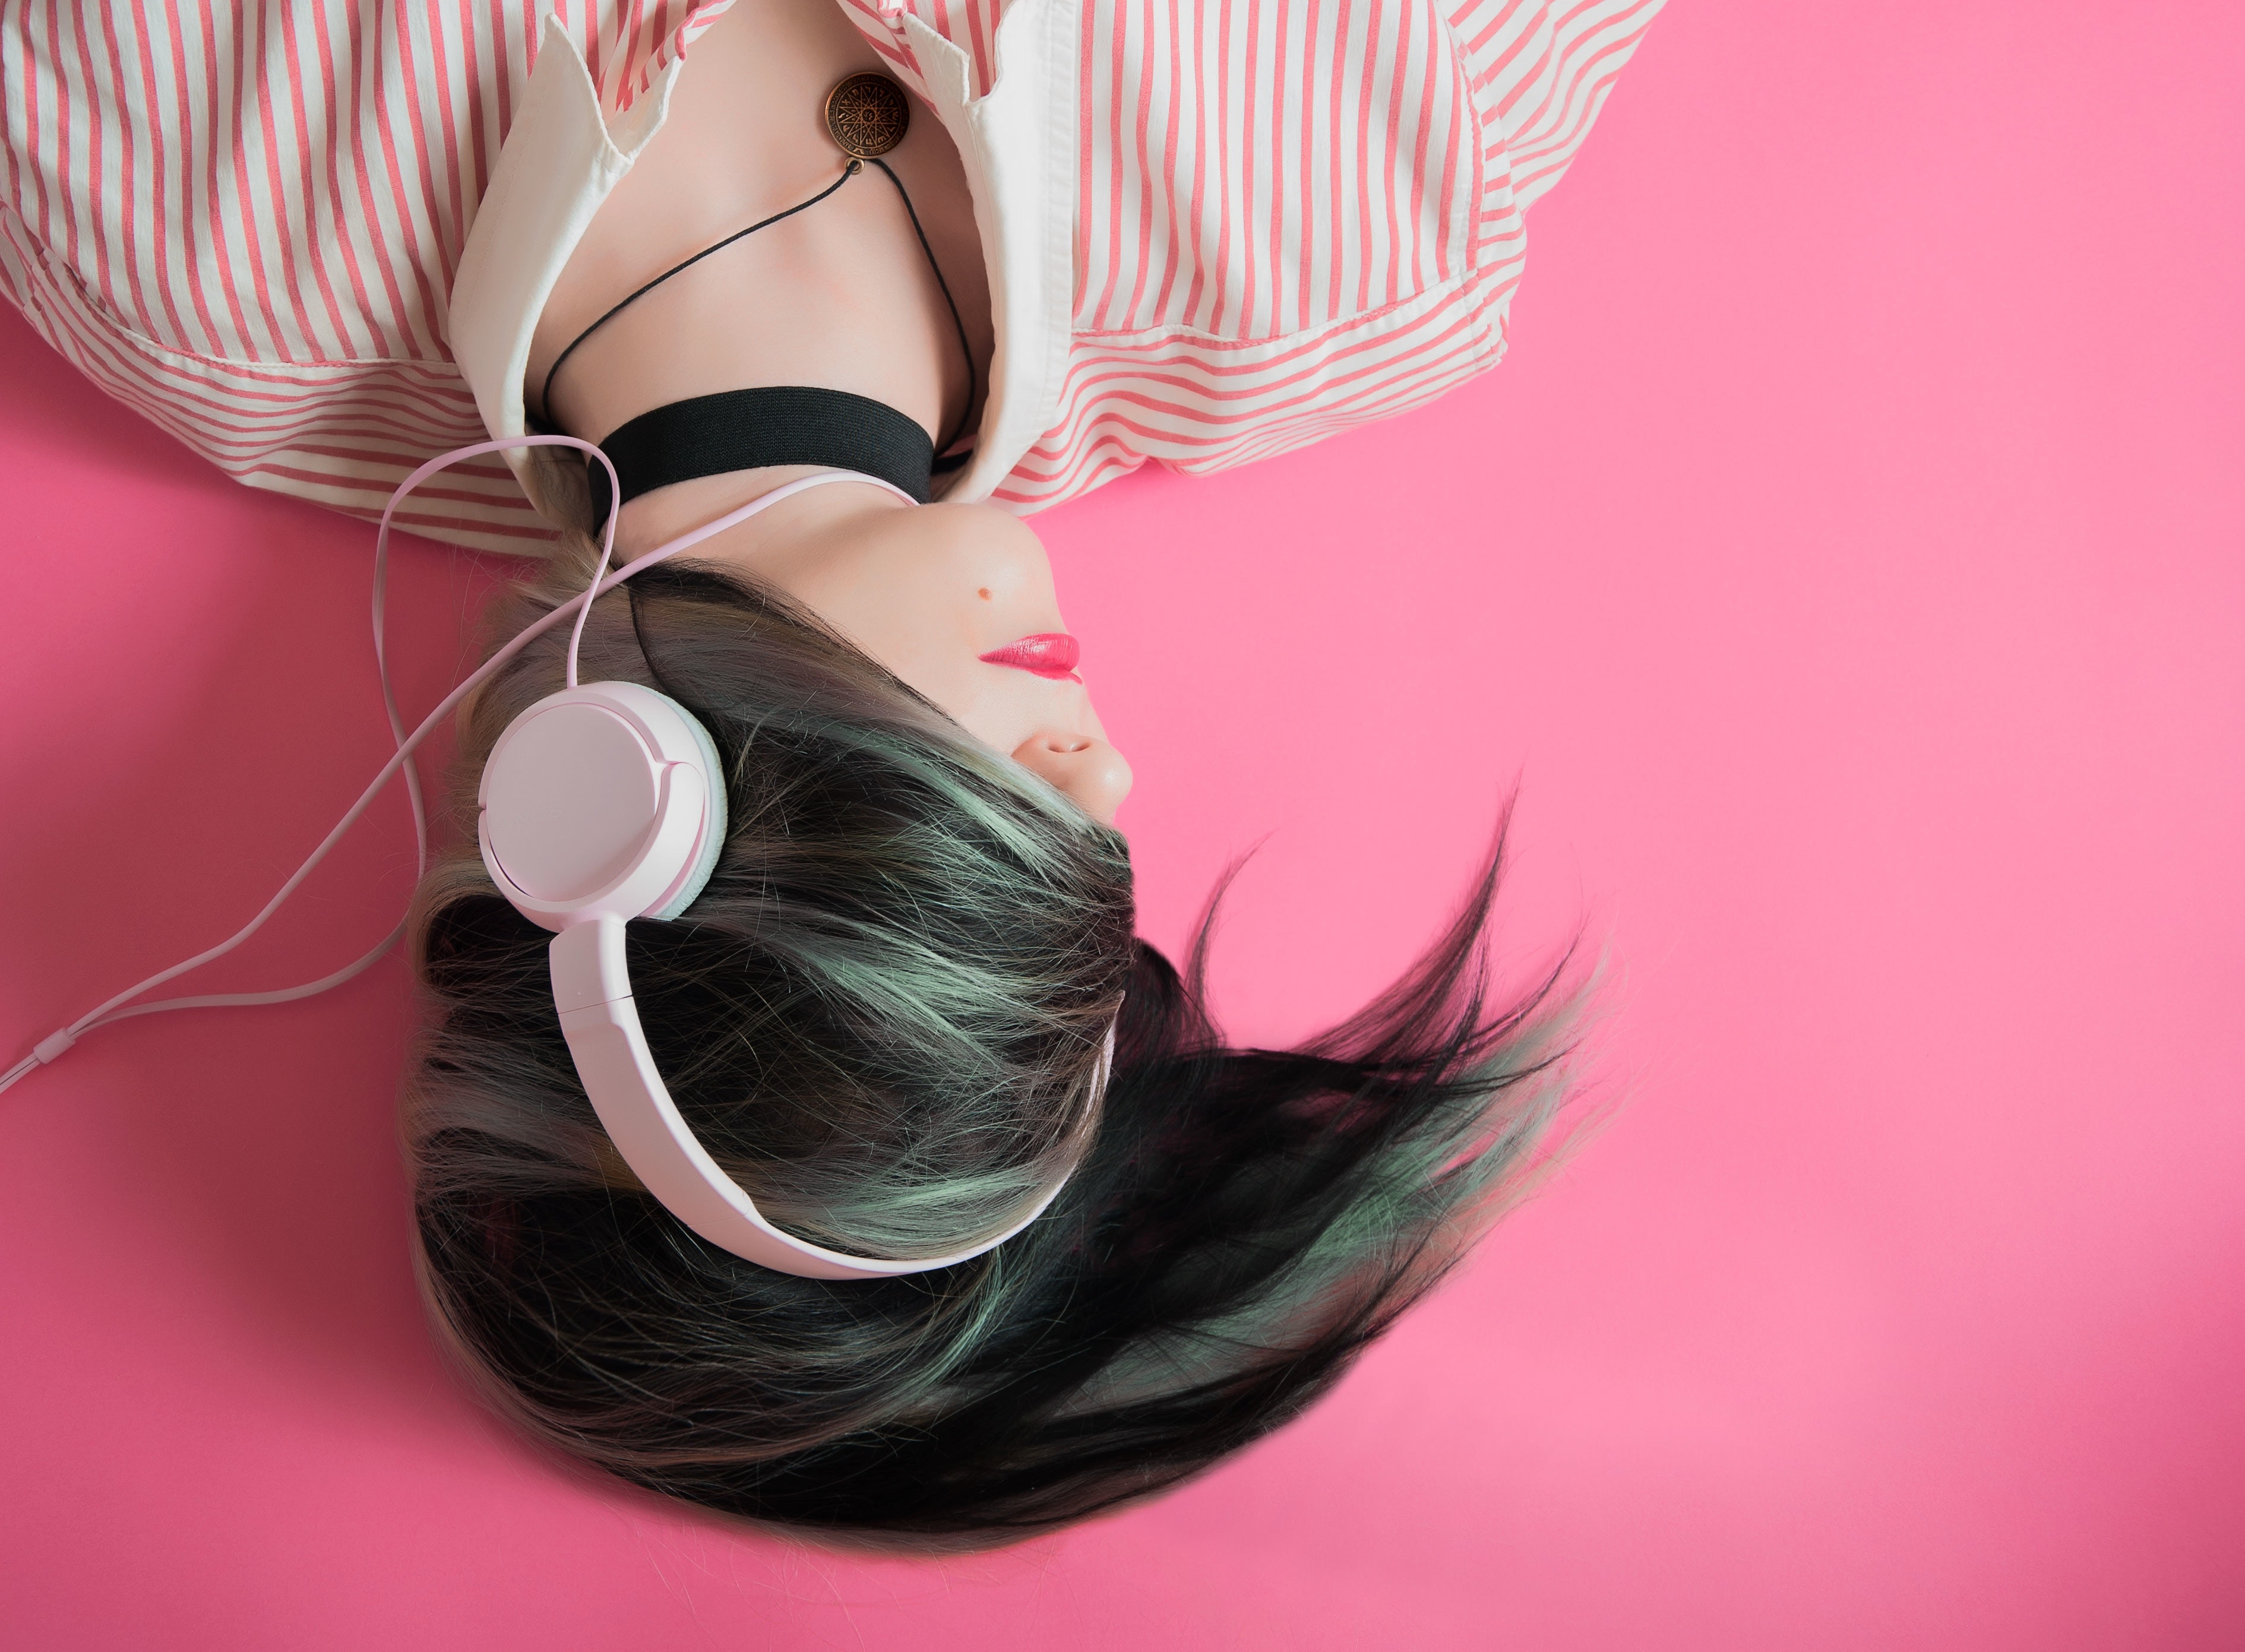 6 Blogs & Podcasts For Book-Loving Feminists